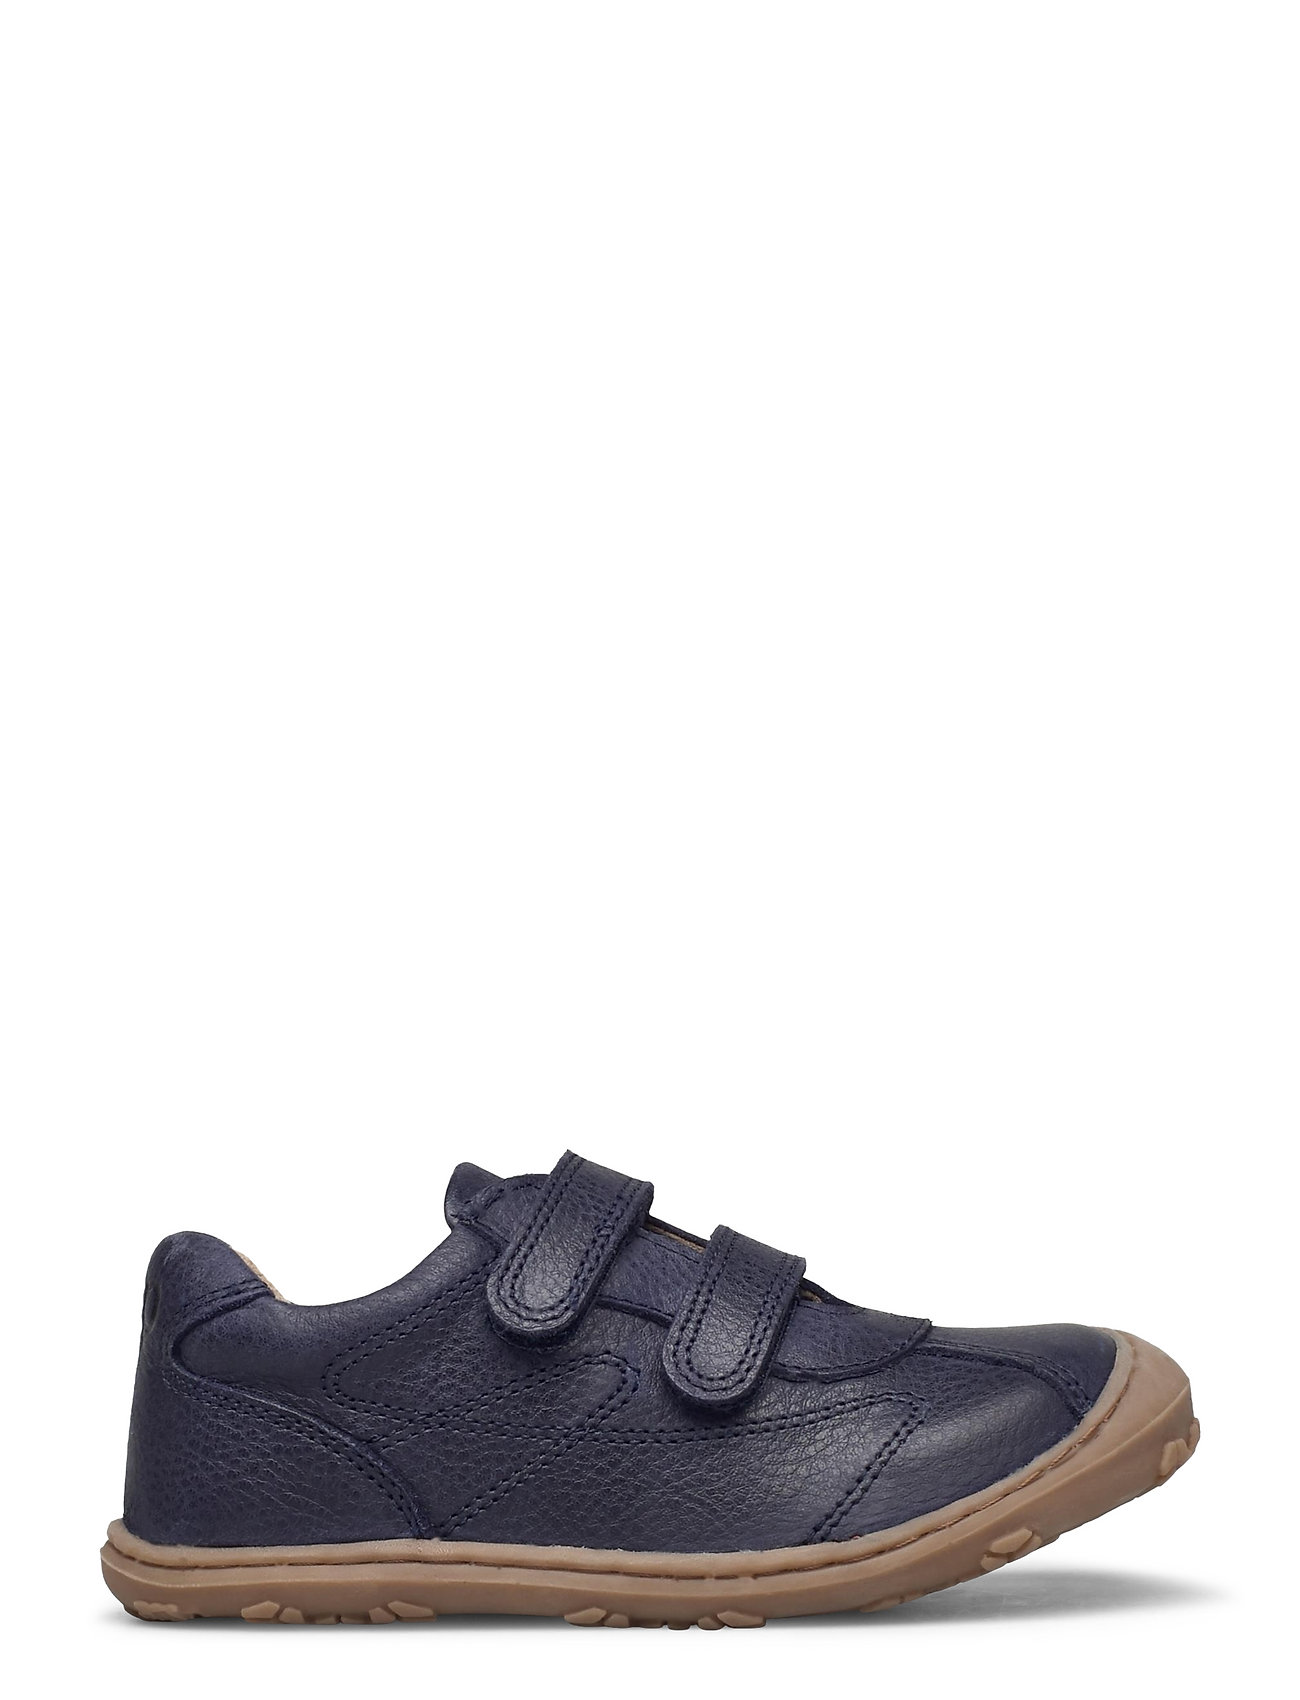 Image of Hand Made Shoe Low-top Sneakers Blå Arauto RAP (3495685791)